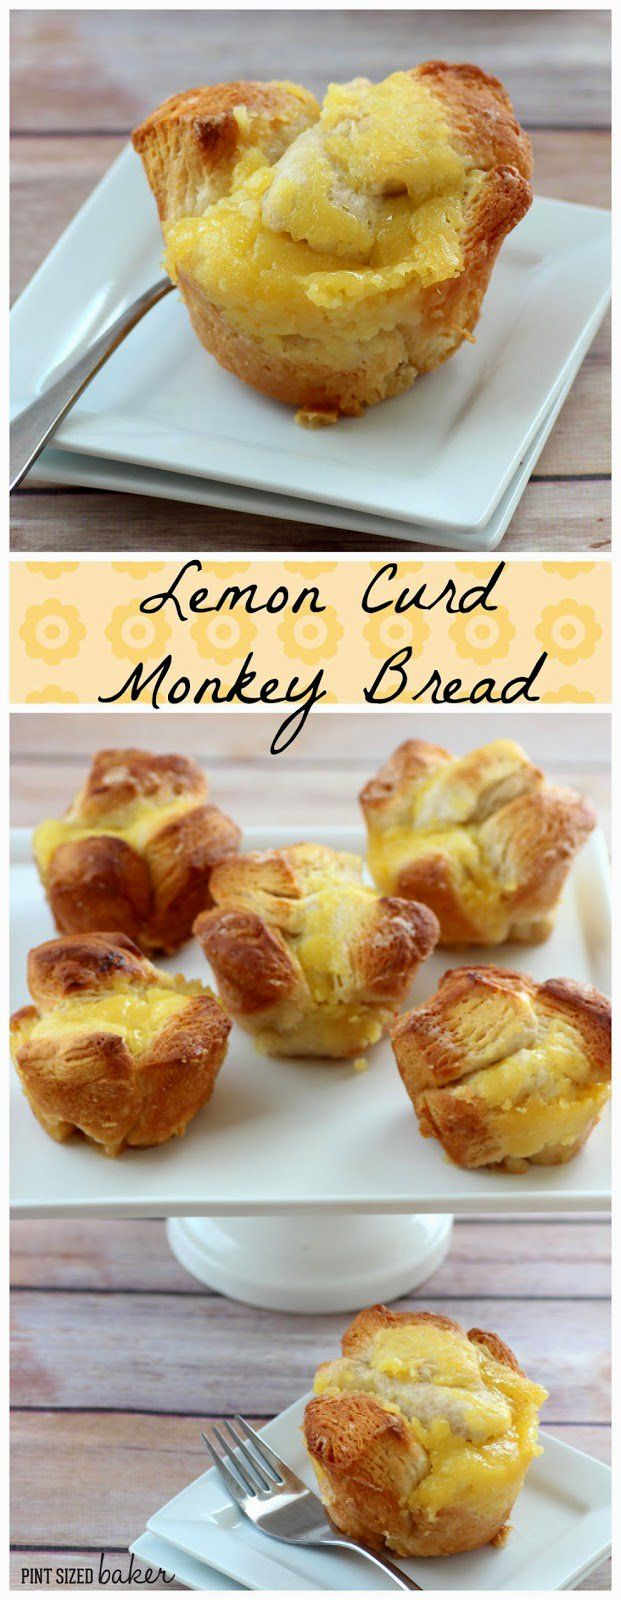 I LOVE Monkey Bread! Love, love, love it!! It's easy to make and feeds a ton of people... which, for me, are also the downfalls of it... It's too easy to make and it's just two of us who eat it. So, I wanted to make a smaller batch of pull-apart bread ...